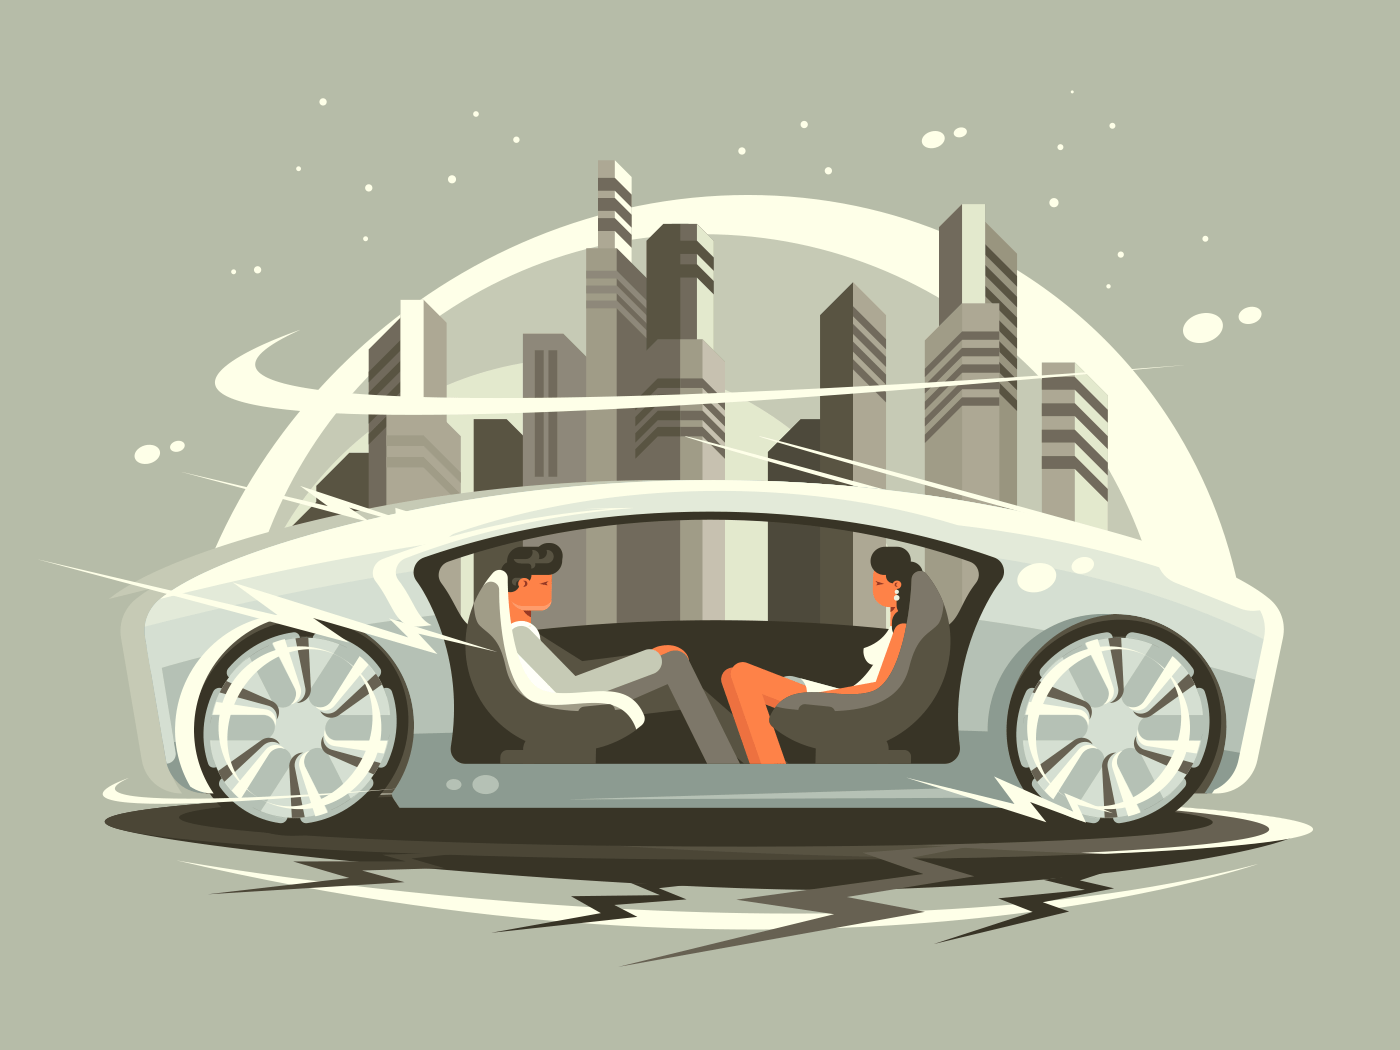 Car of future illustration